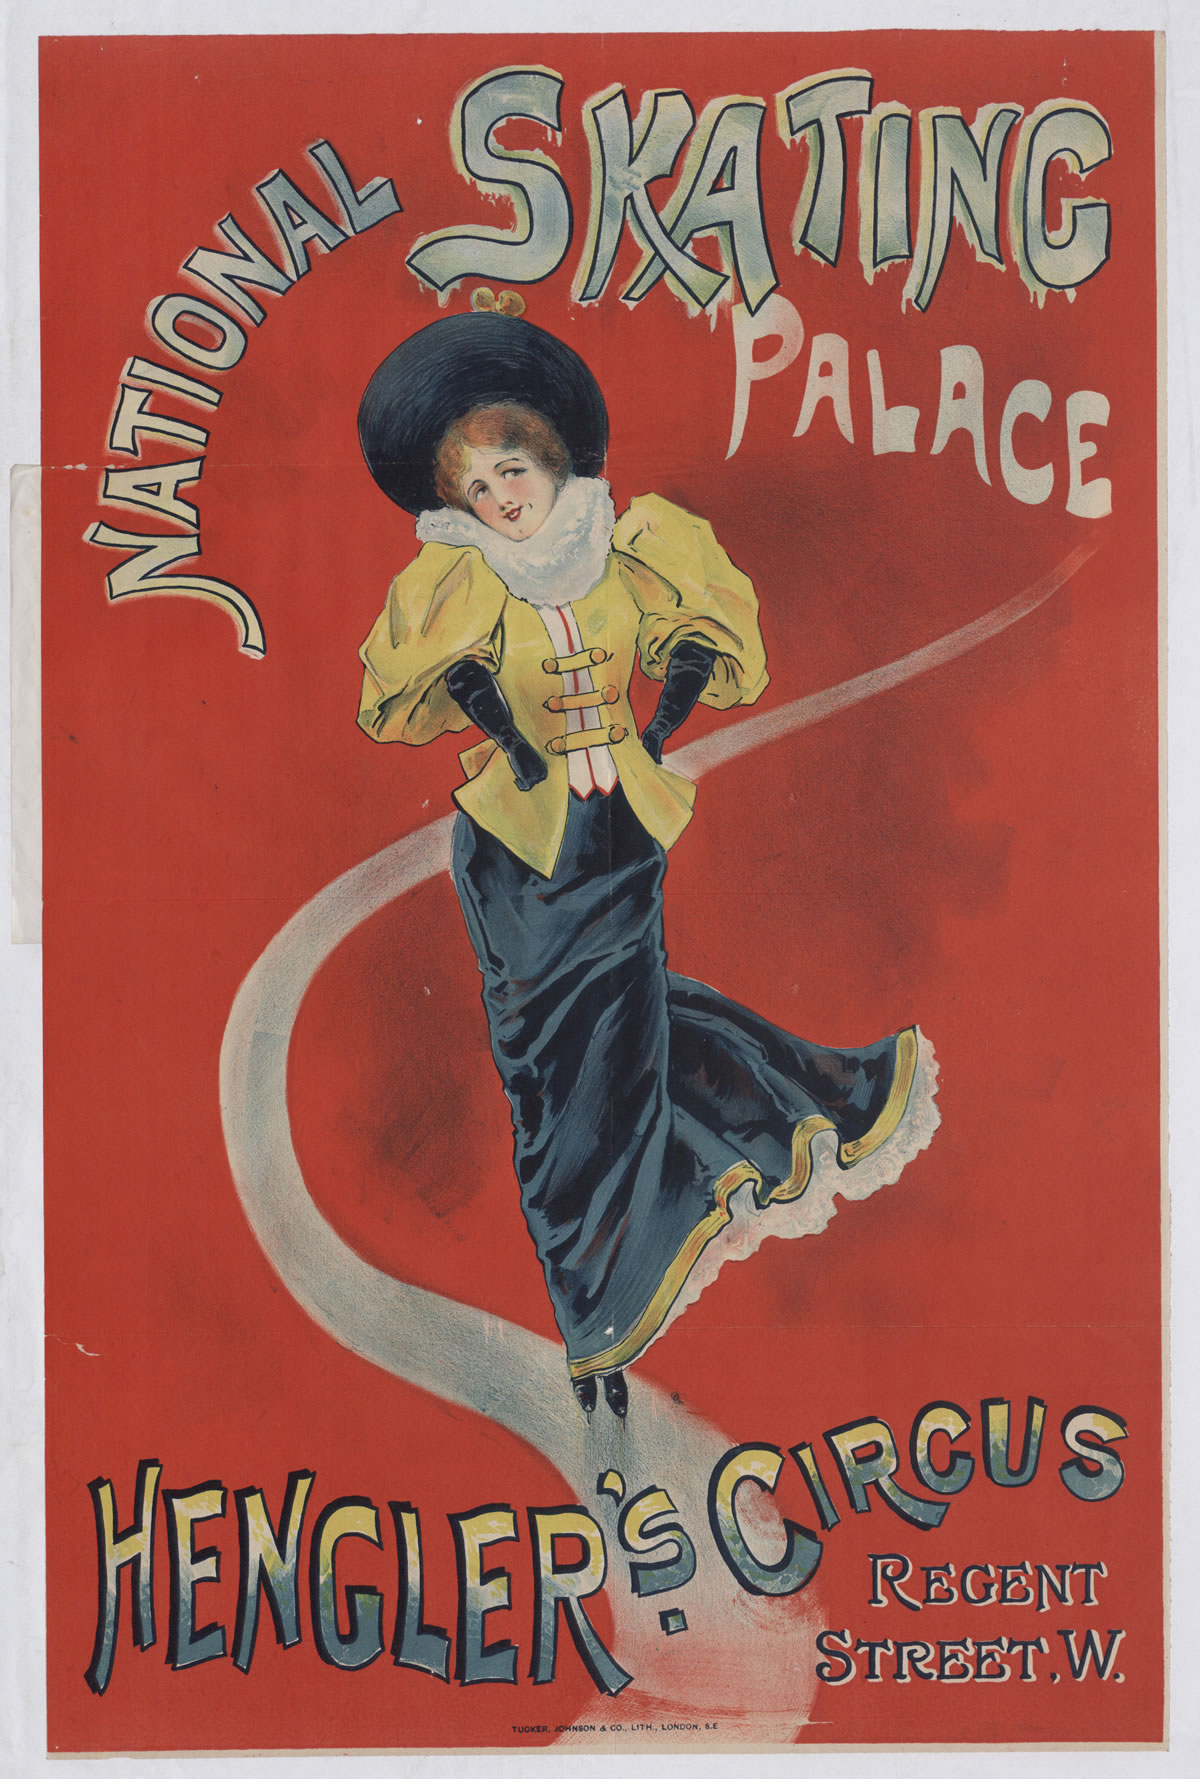 Advertisement for the National Skating Palace ice rink, 1895 (COPY 1/119 f.334)